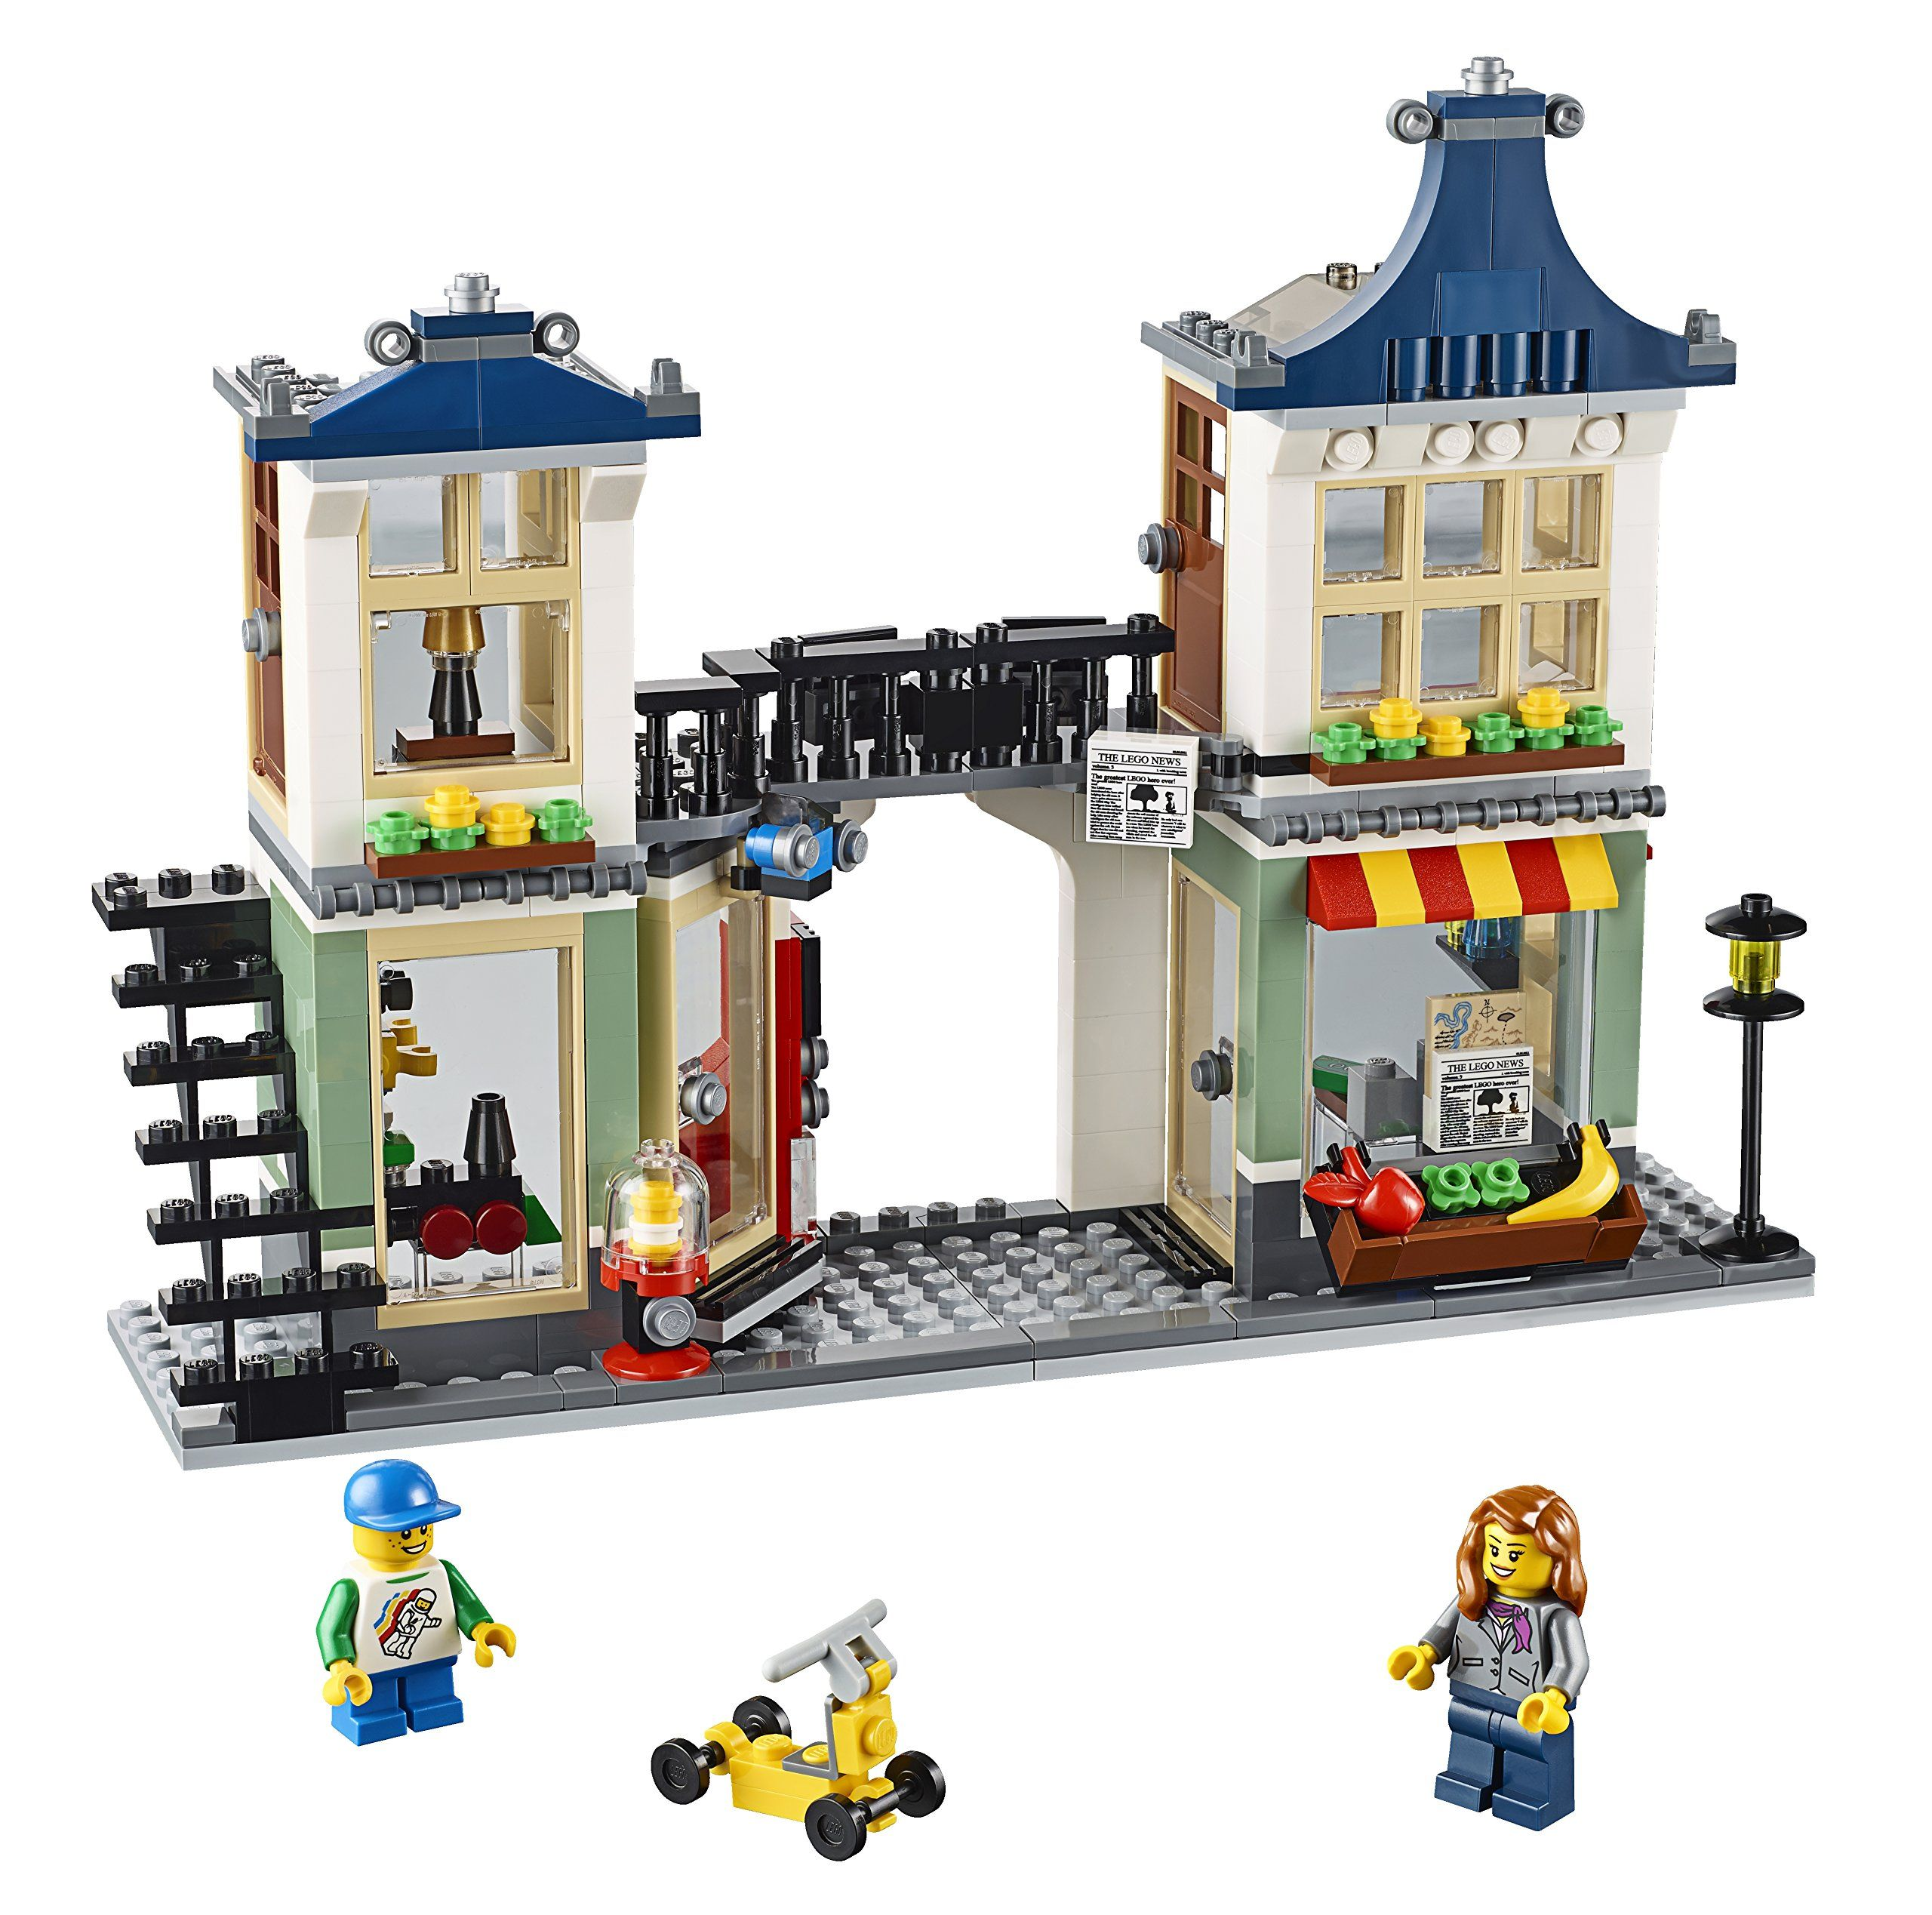 Amazon.com: LEGO Creator Toy and Grocery Shop: Toys & Games | Stuff ...